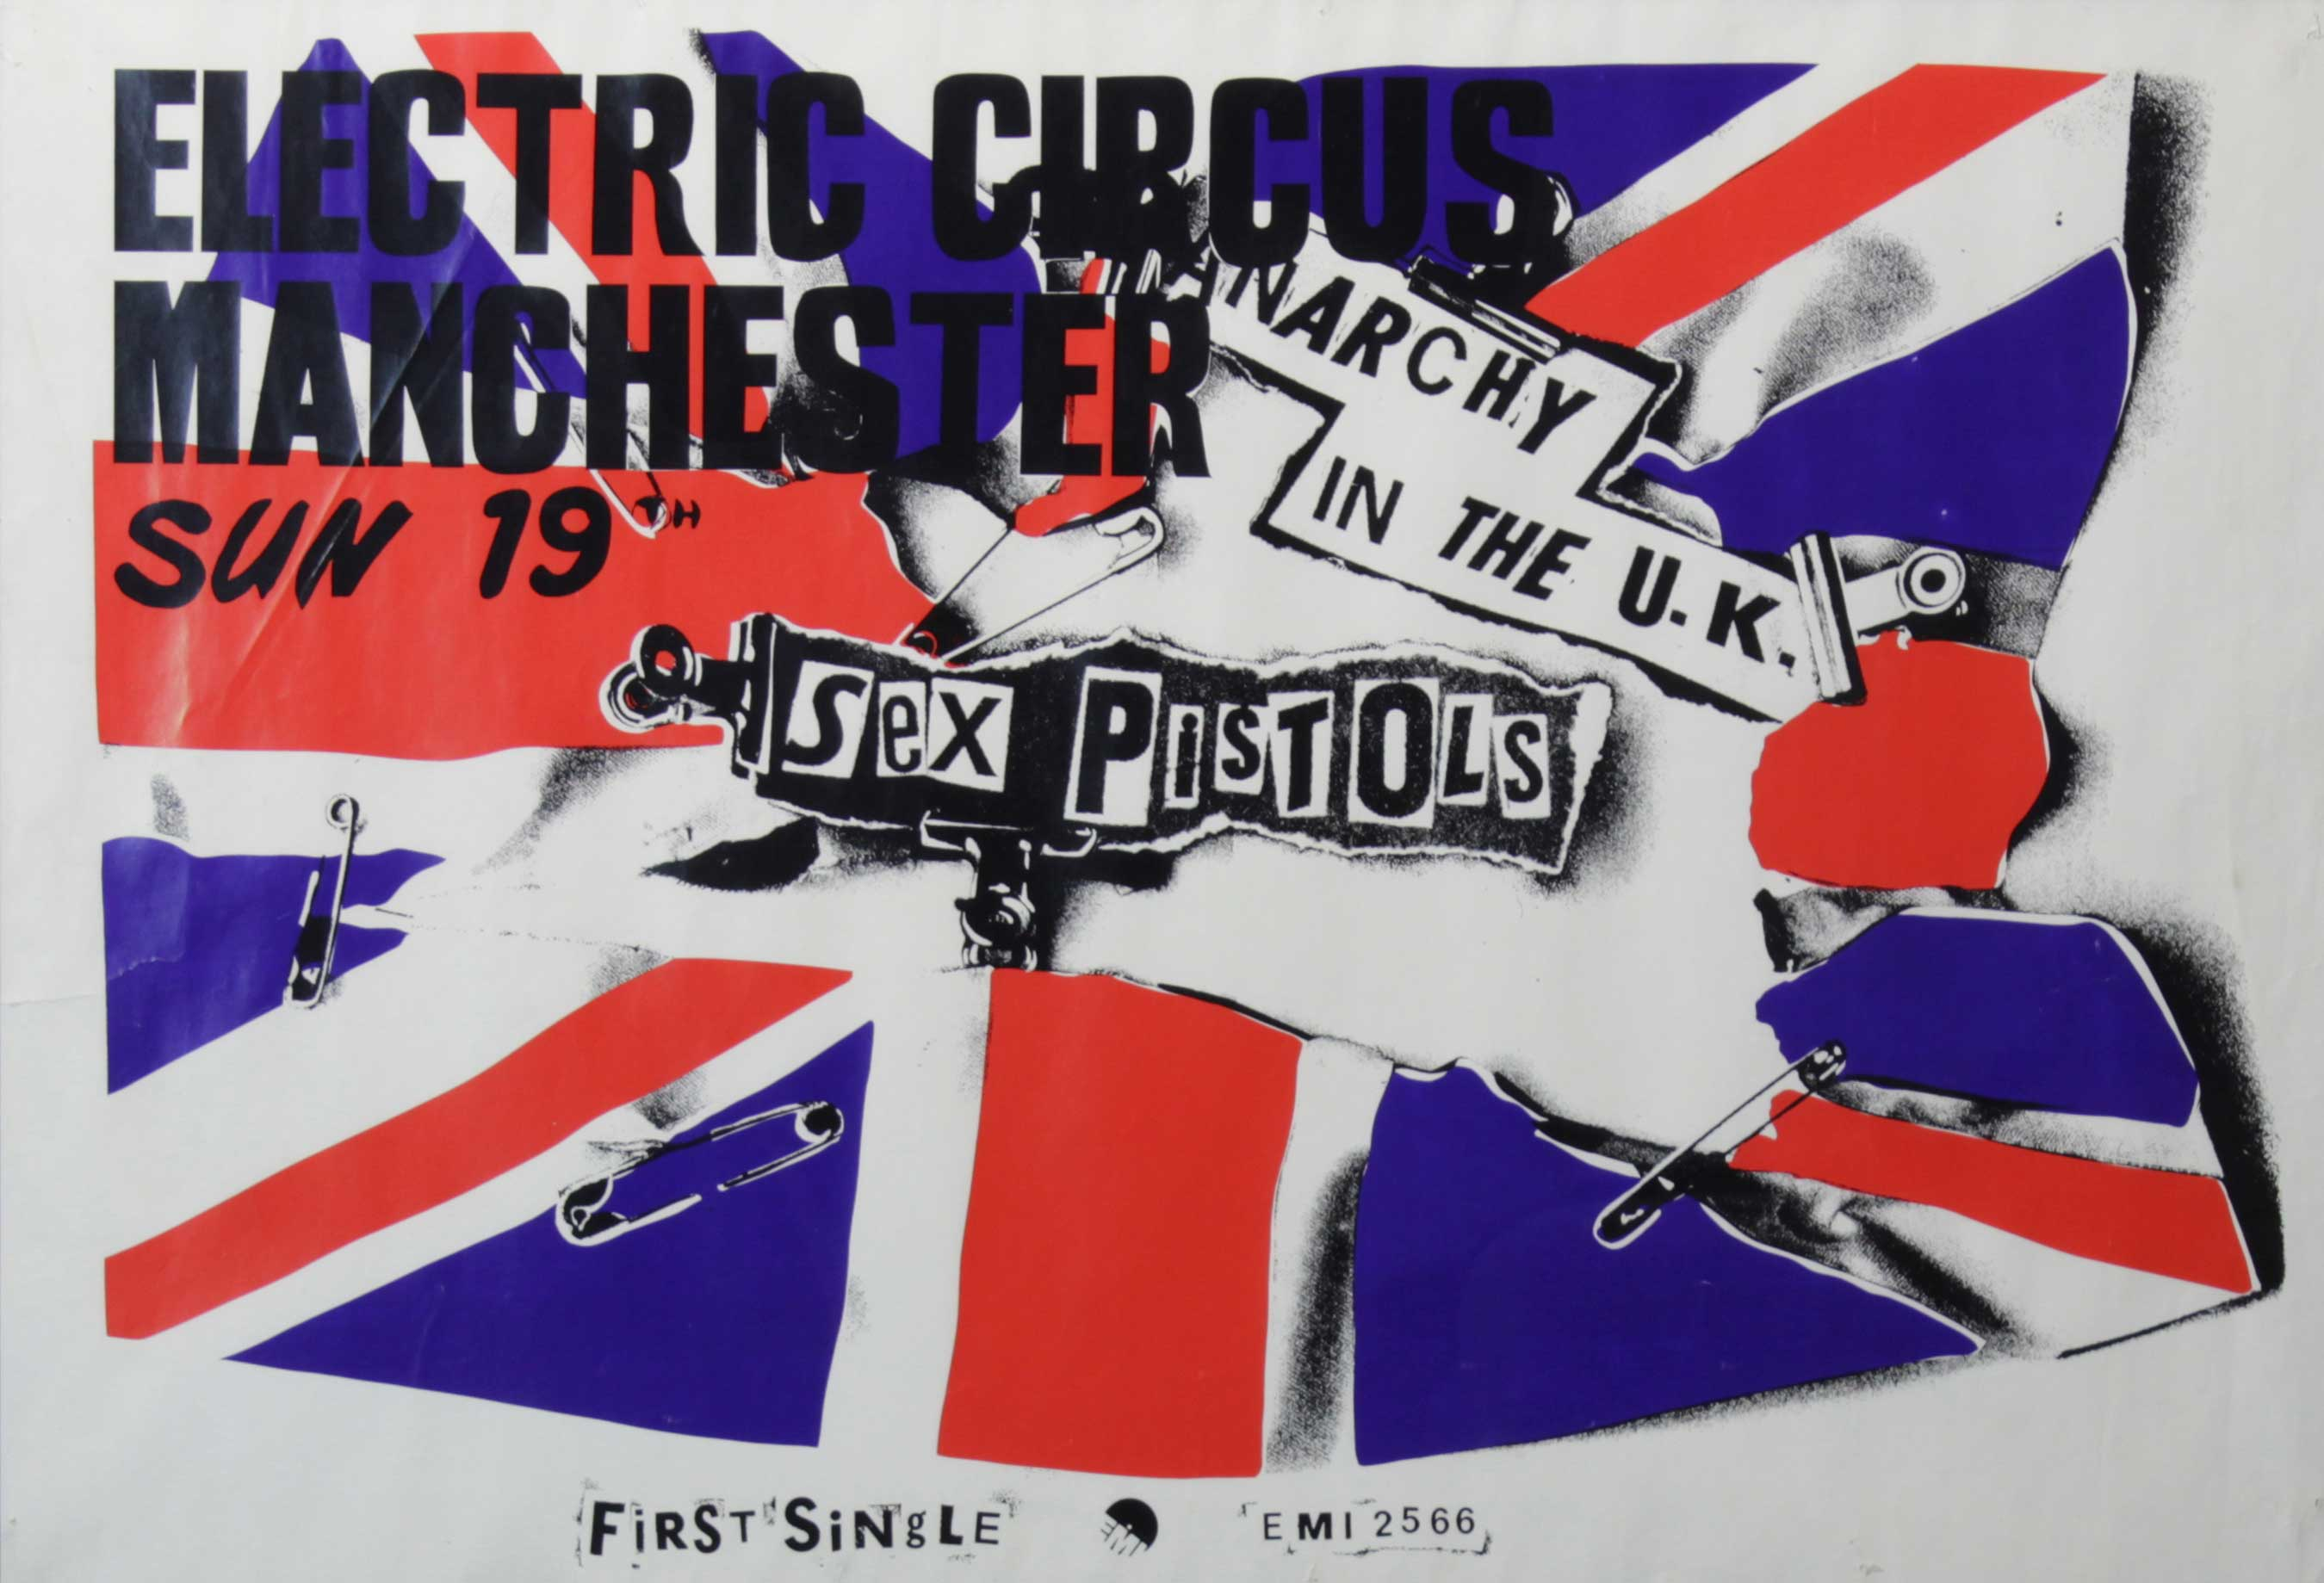 uk in the anarchy pistols sex by